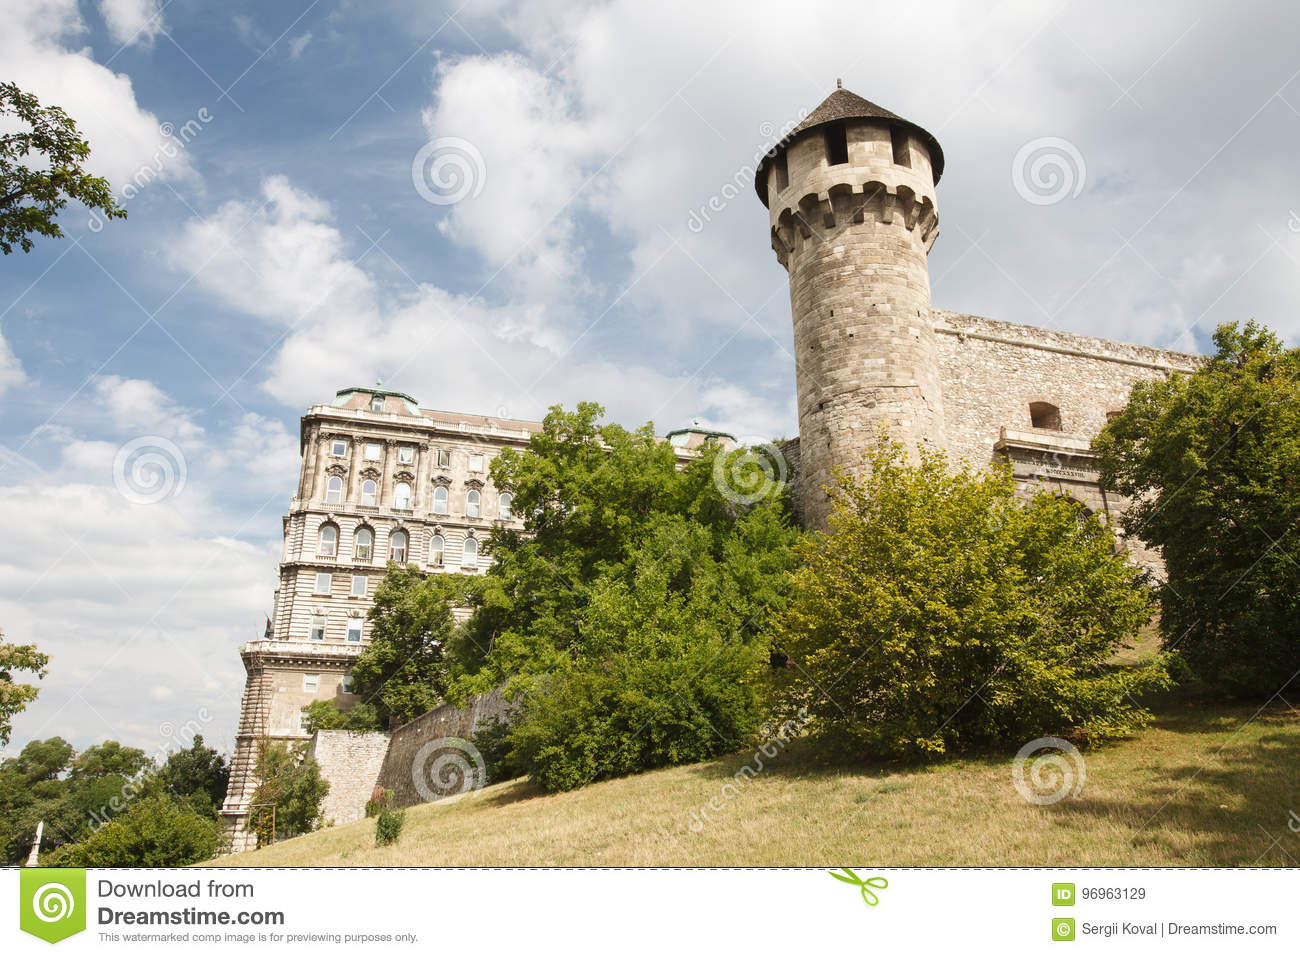 Mace tower and a medieval fortress in the Buda Castle in Budapest